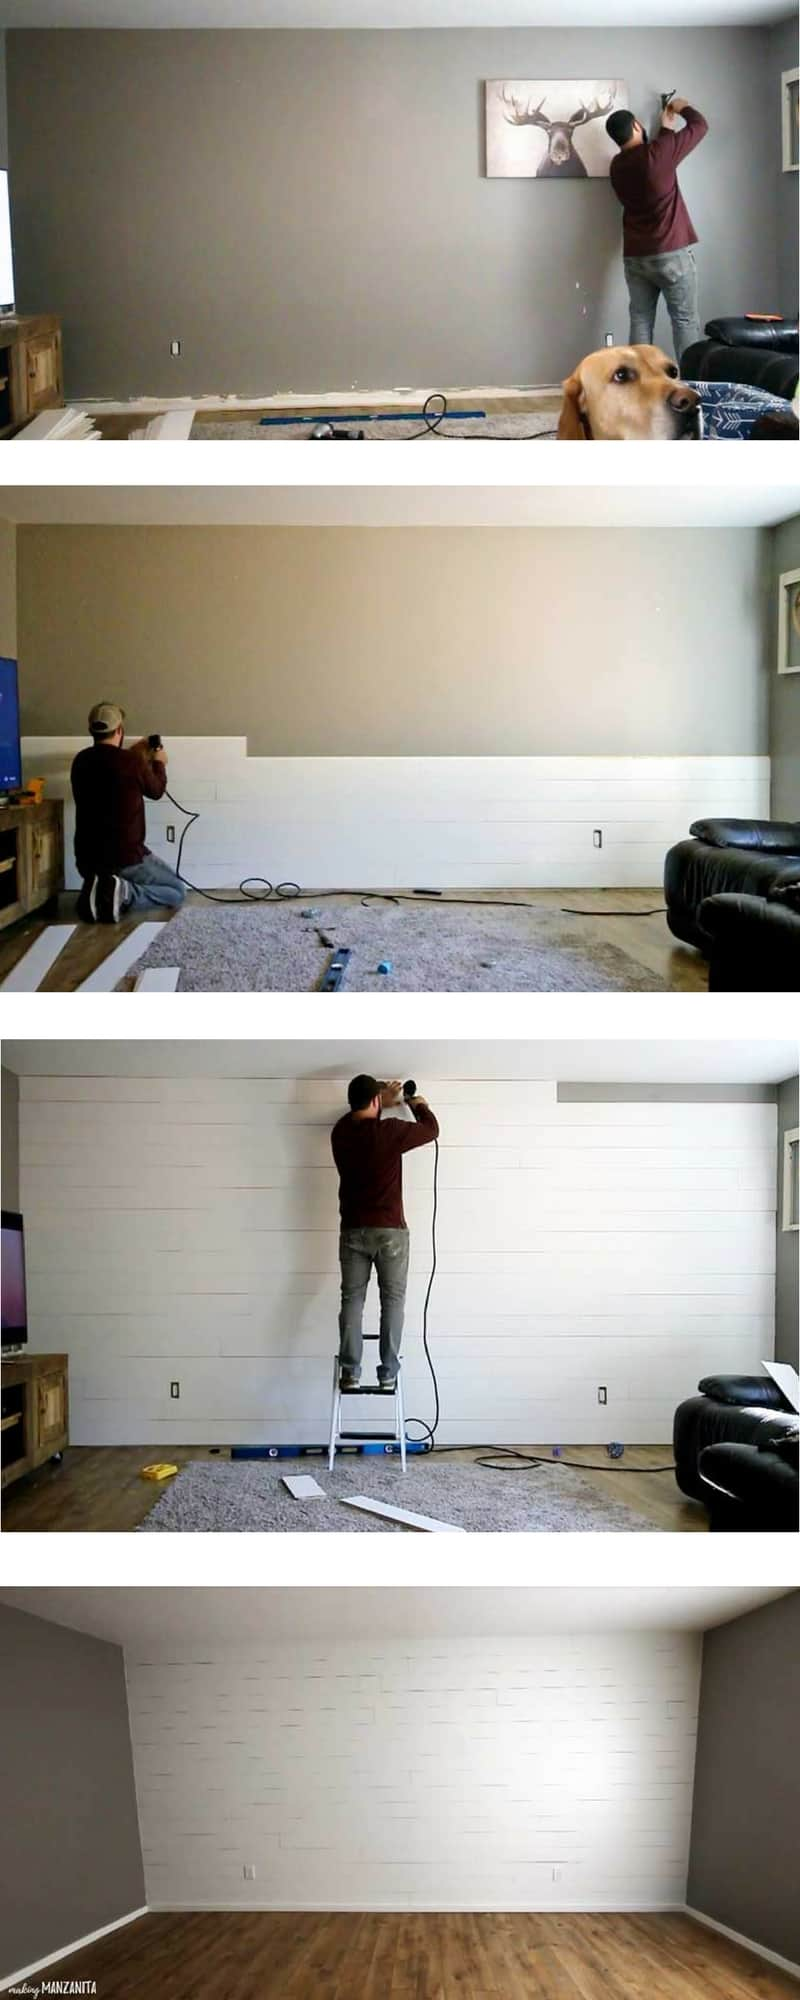 Series of 4 photos showing the installation of a shiplap feature wall in living room from beginning to end